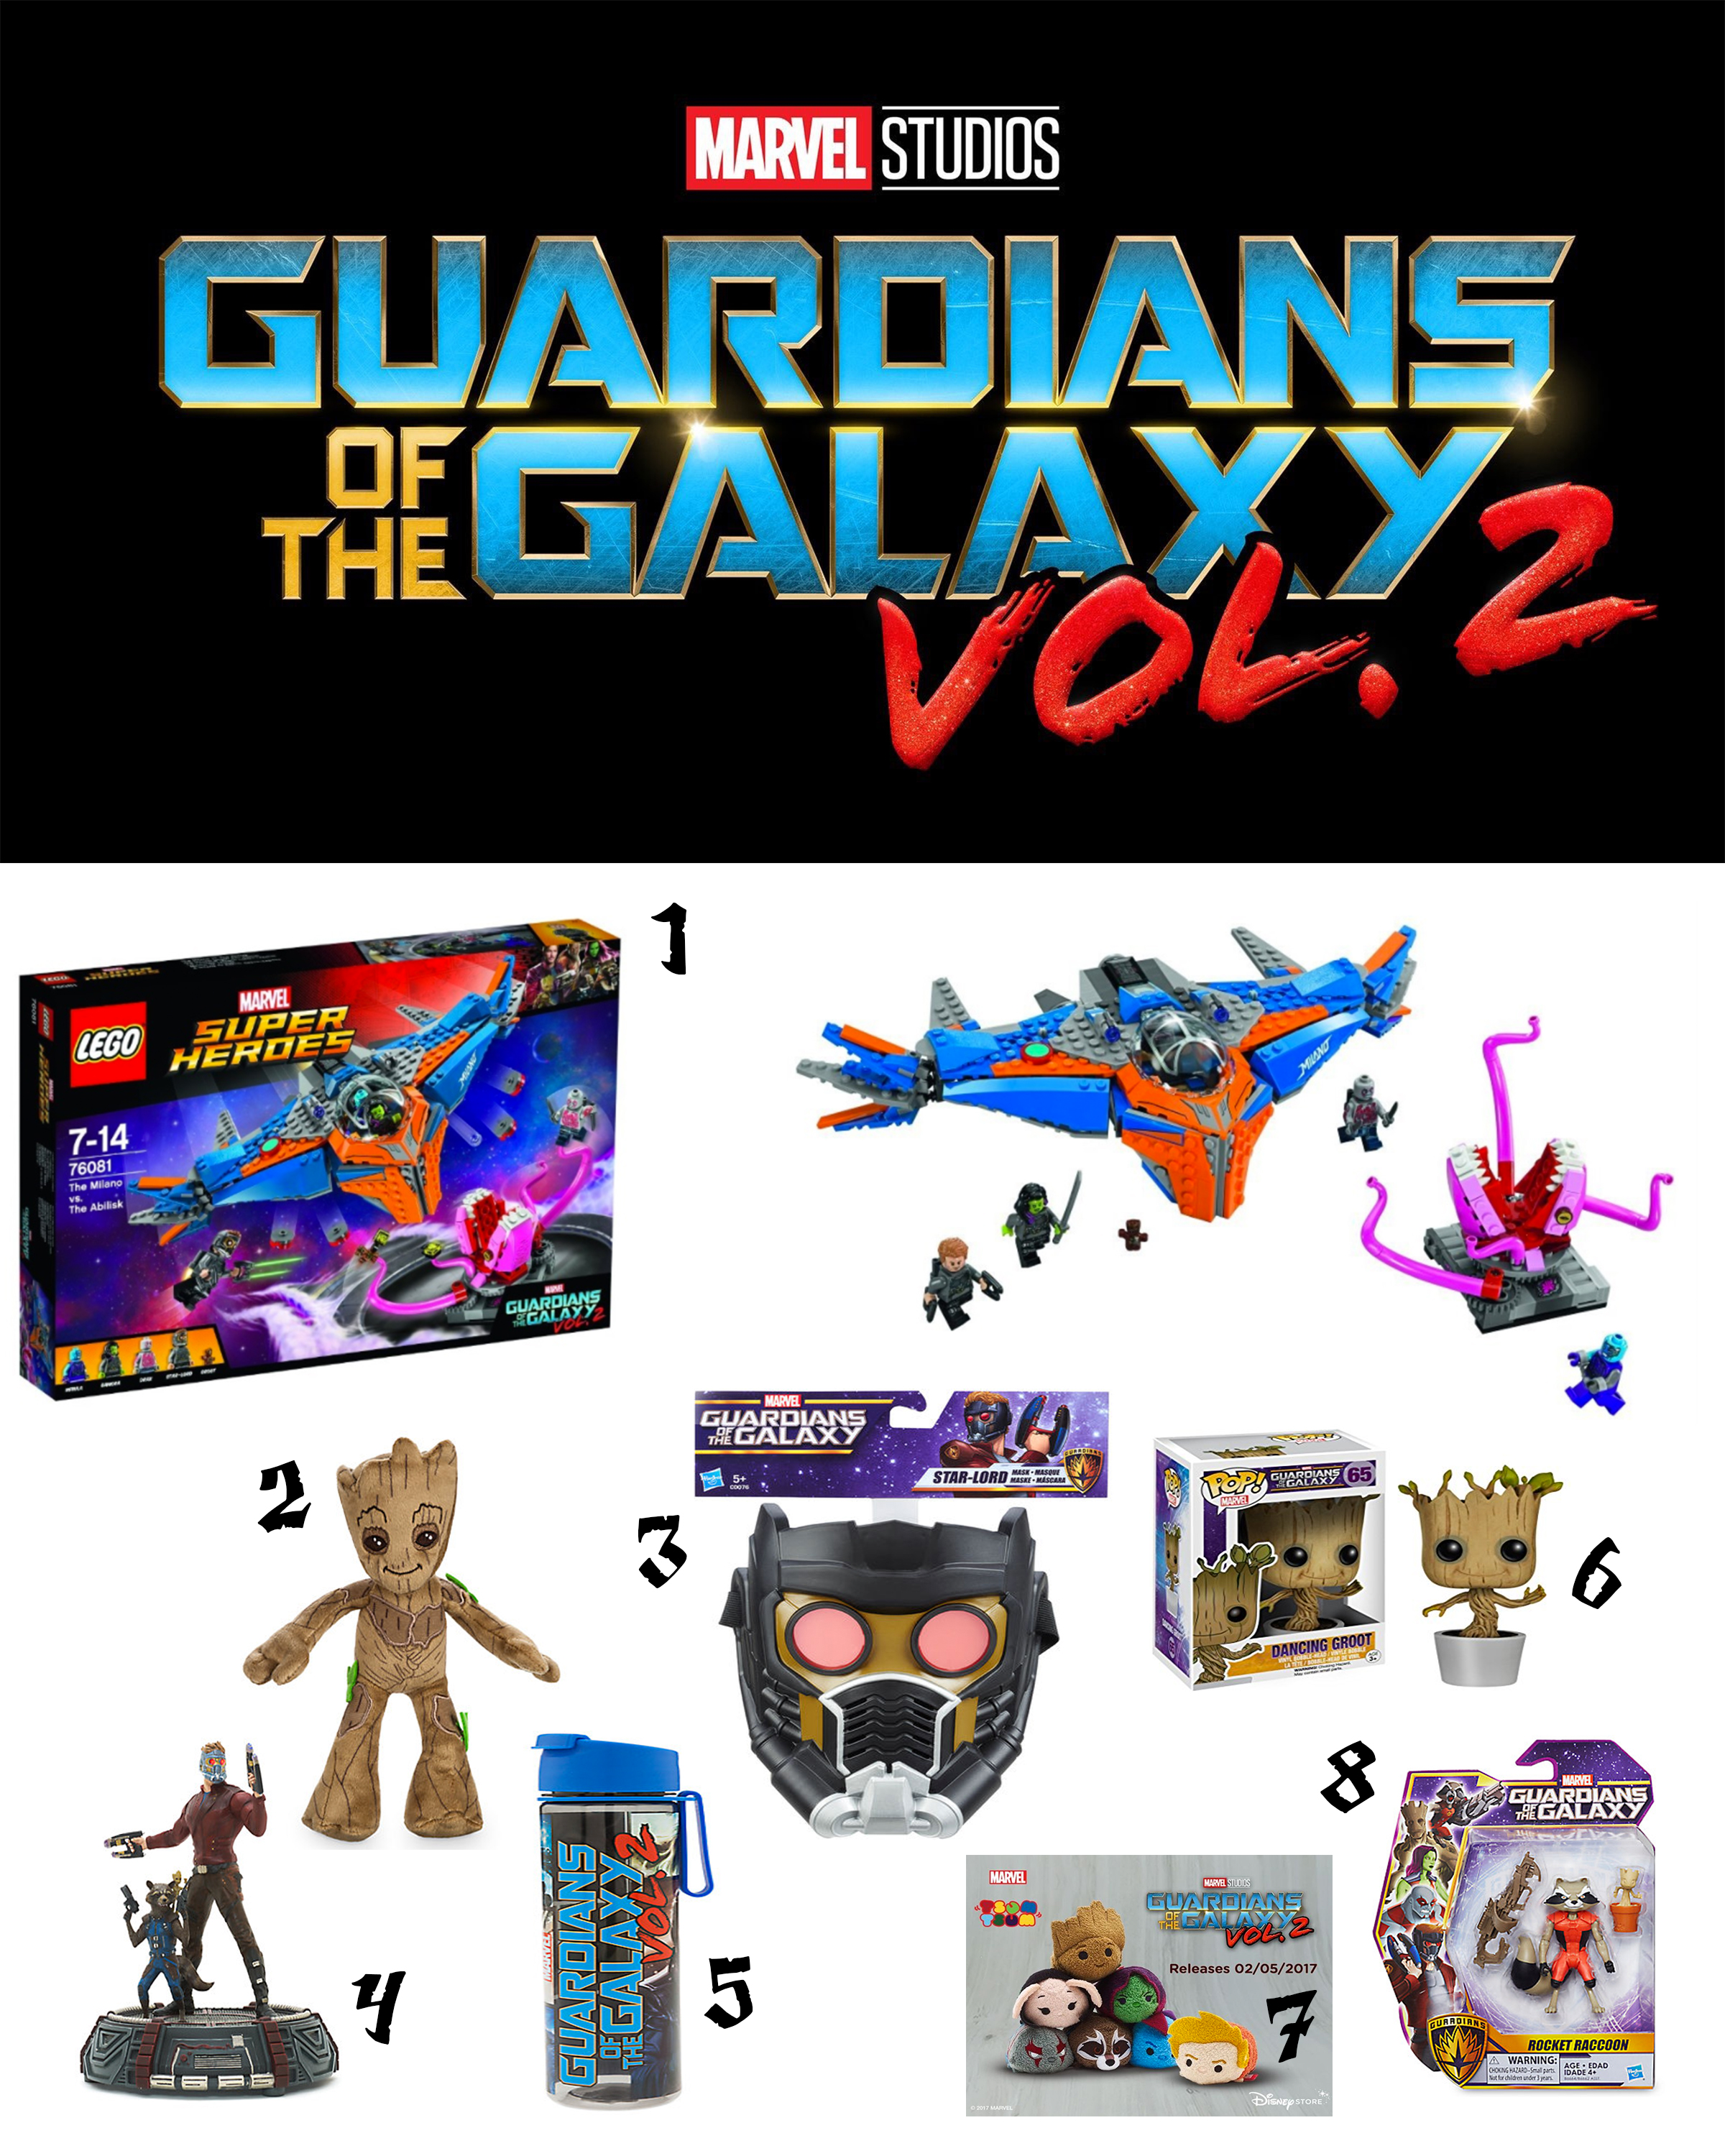 Guardians of the Galaxy Vol. 2. toys